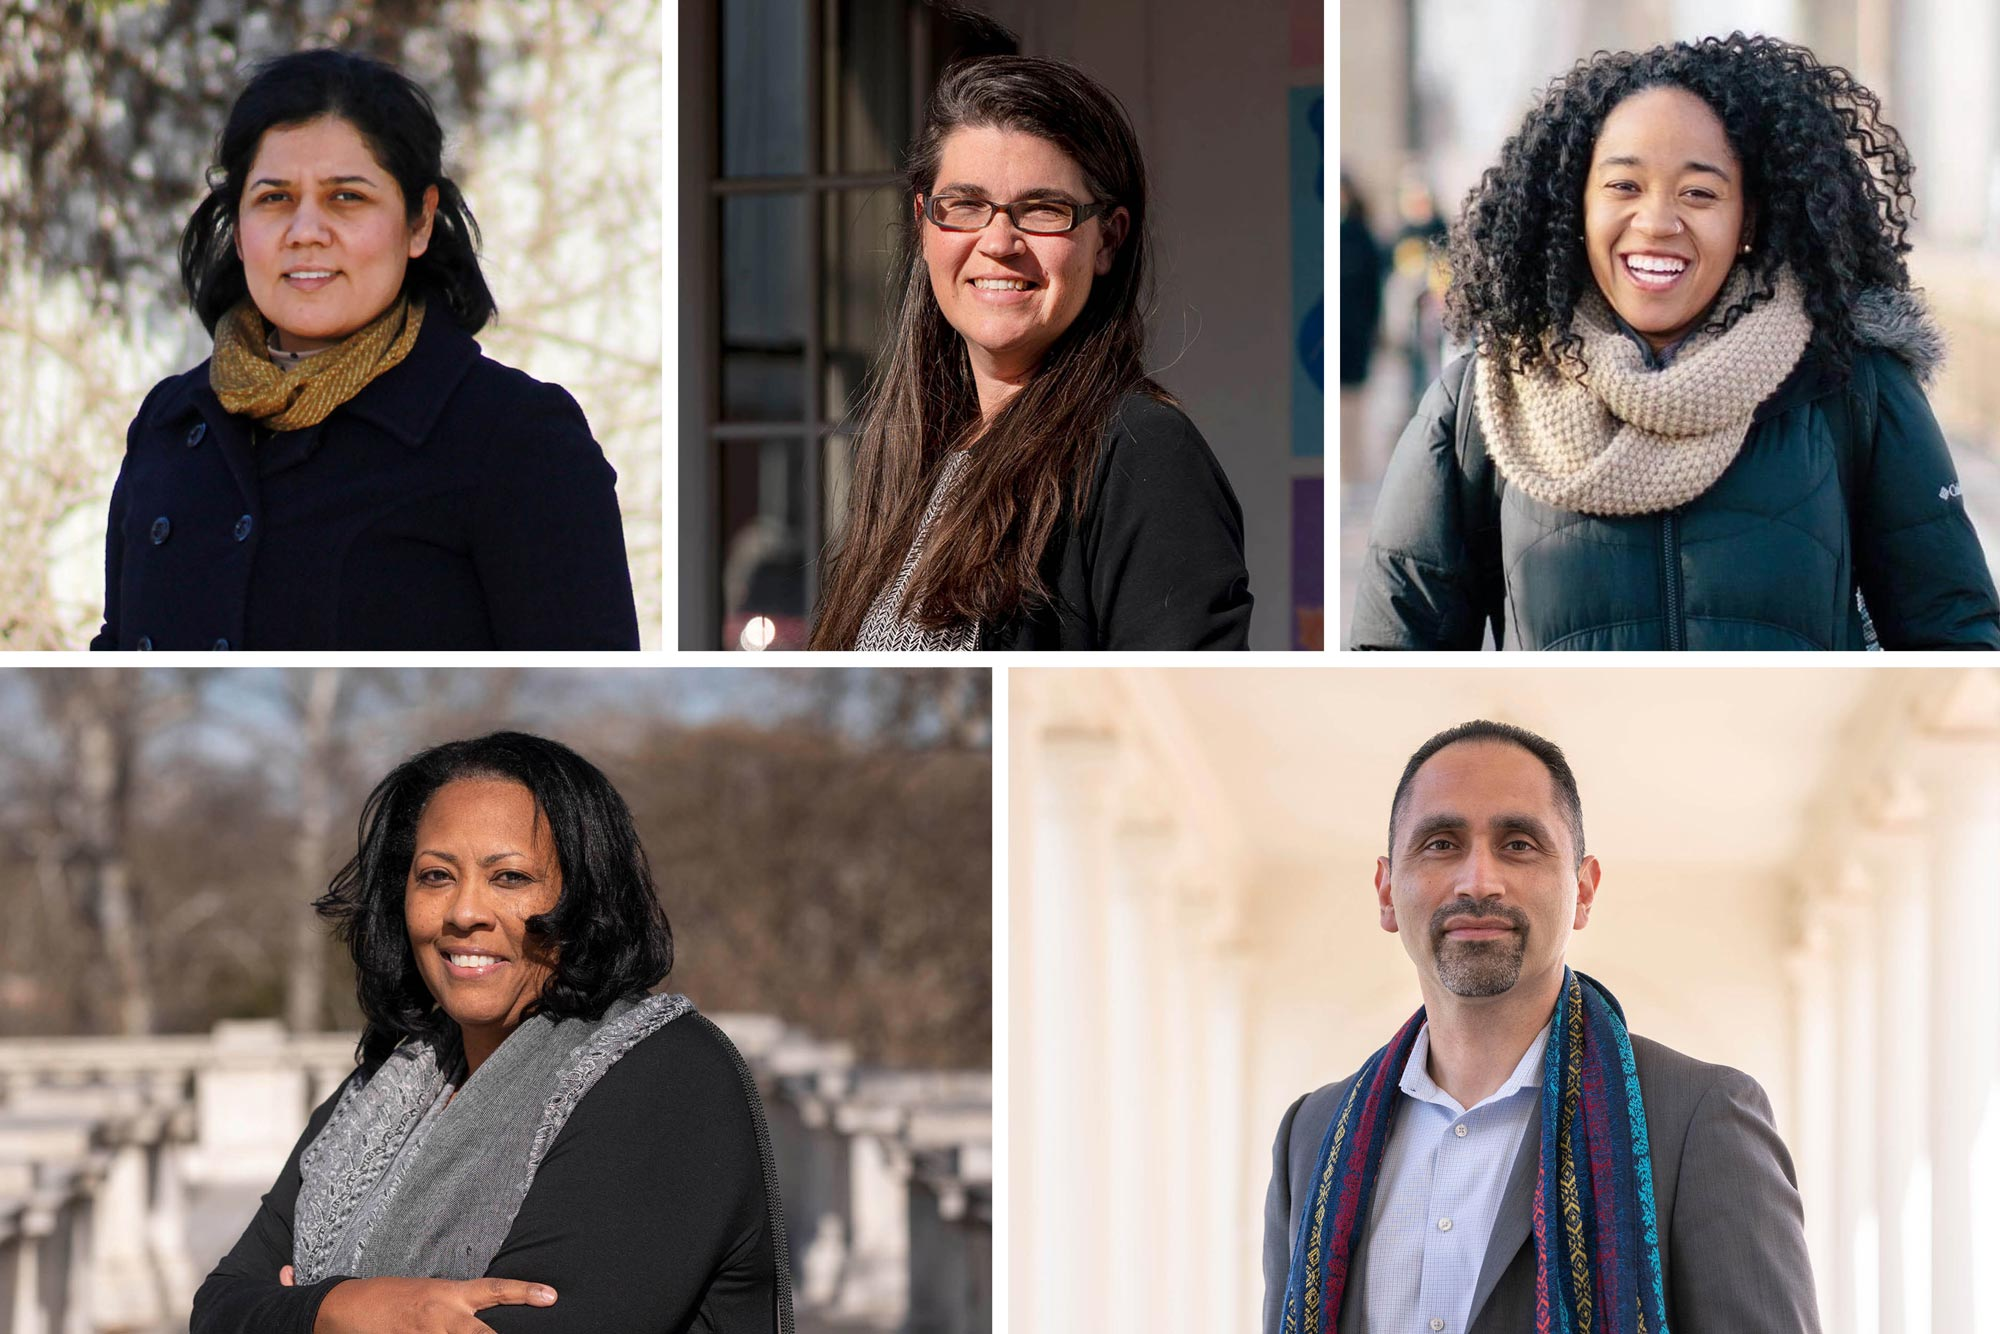 The 2021 Community Fellows-in-Residence include, top row from left, María Esparza Rodríguez, Anna Mendez and Marian McCullough, and bottom row, Benita Mayo and Edgar Lara. (Photos by Sanjay Suchak, University Communications; contributed)